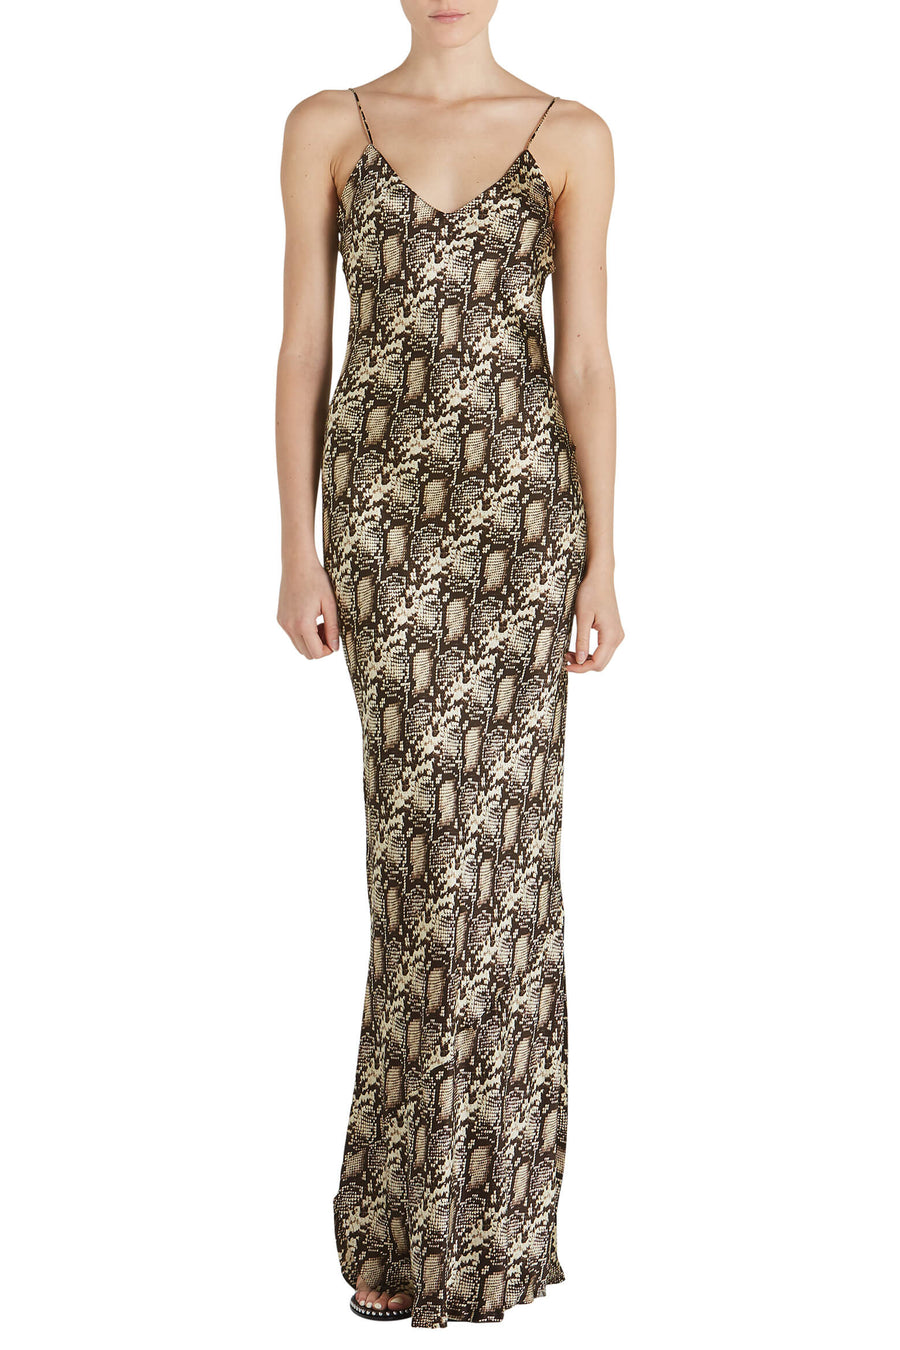 Nili Lotan Cami Gown in Dark Brown Snake from The New Trend